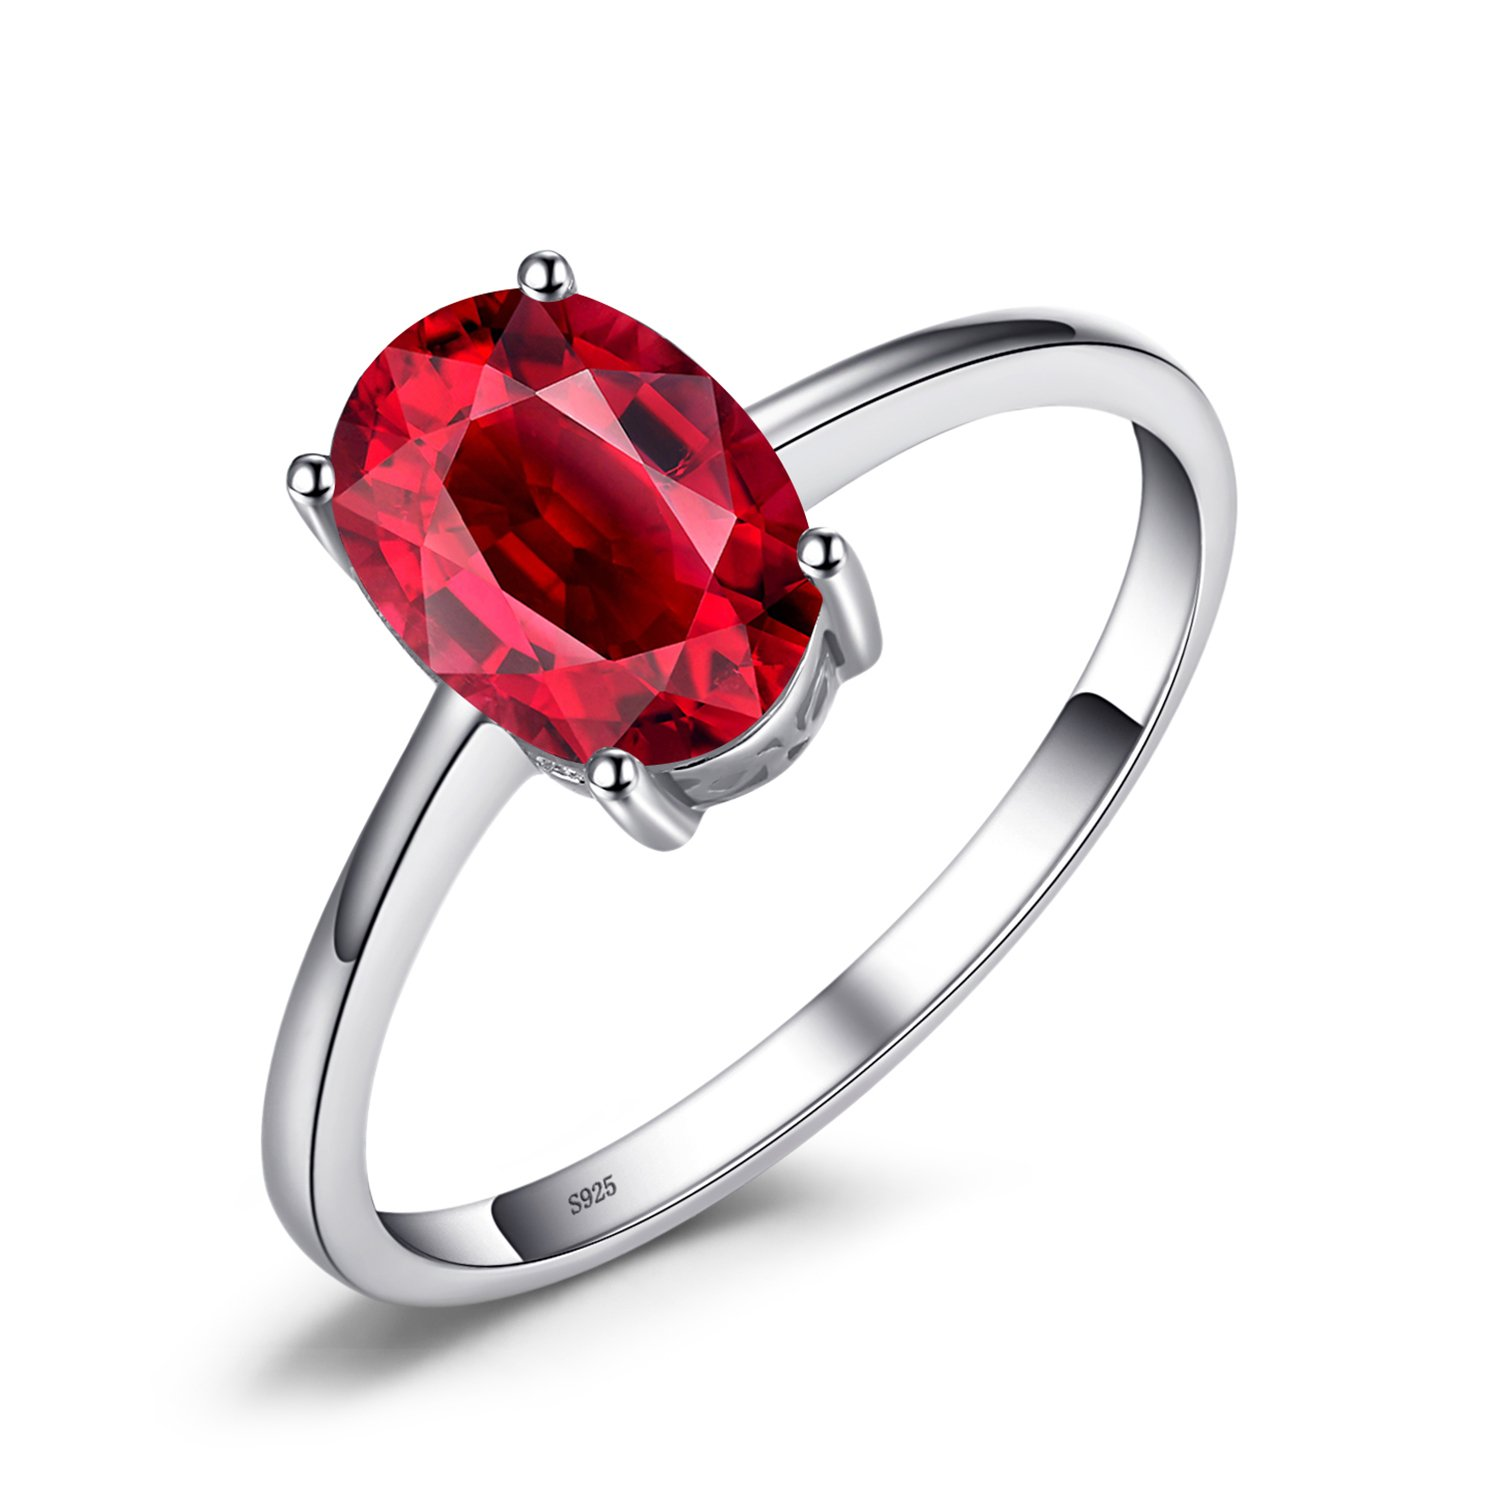 JewelryPalace Oval 1.7ct Natural Red Garnet Birthstone Solitaire Ring Genuine 925 Sterling Silver Size 8